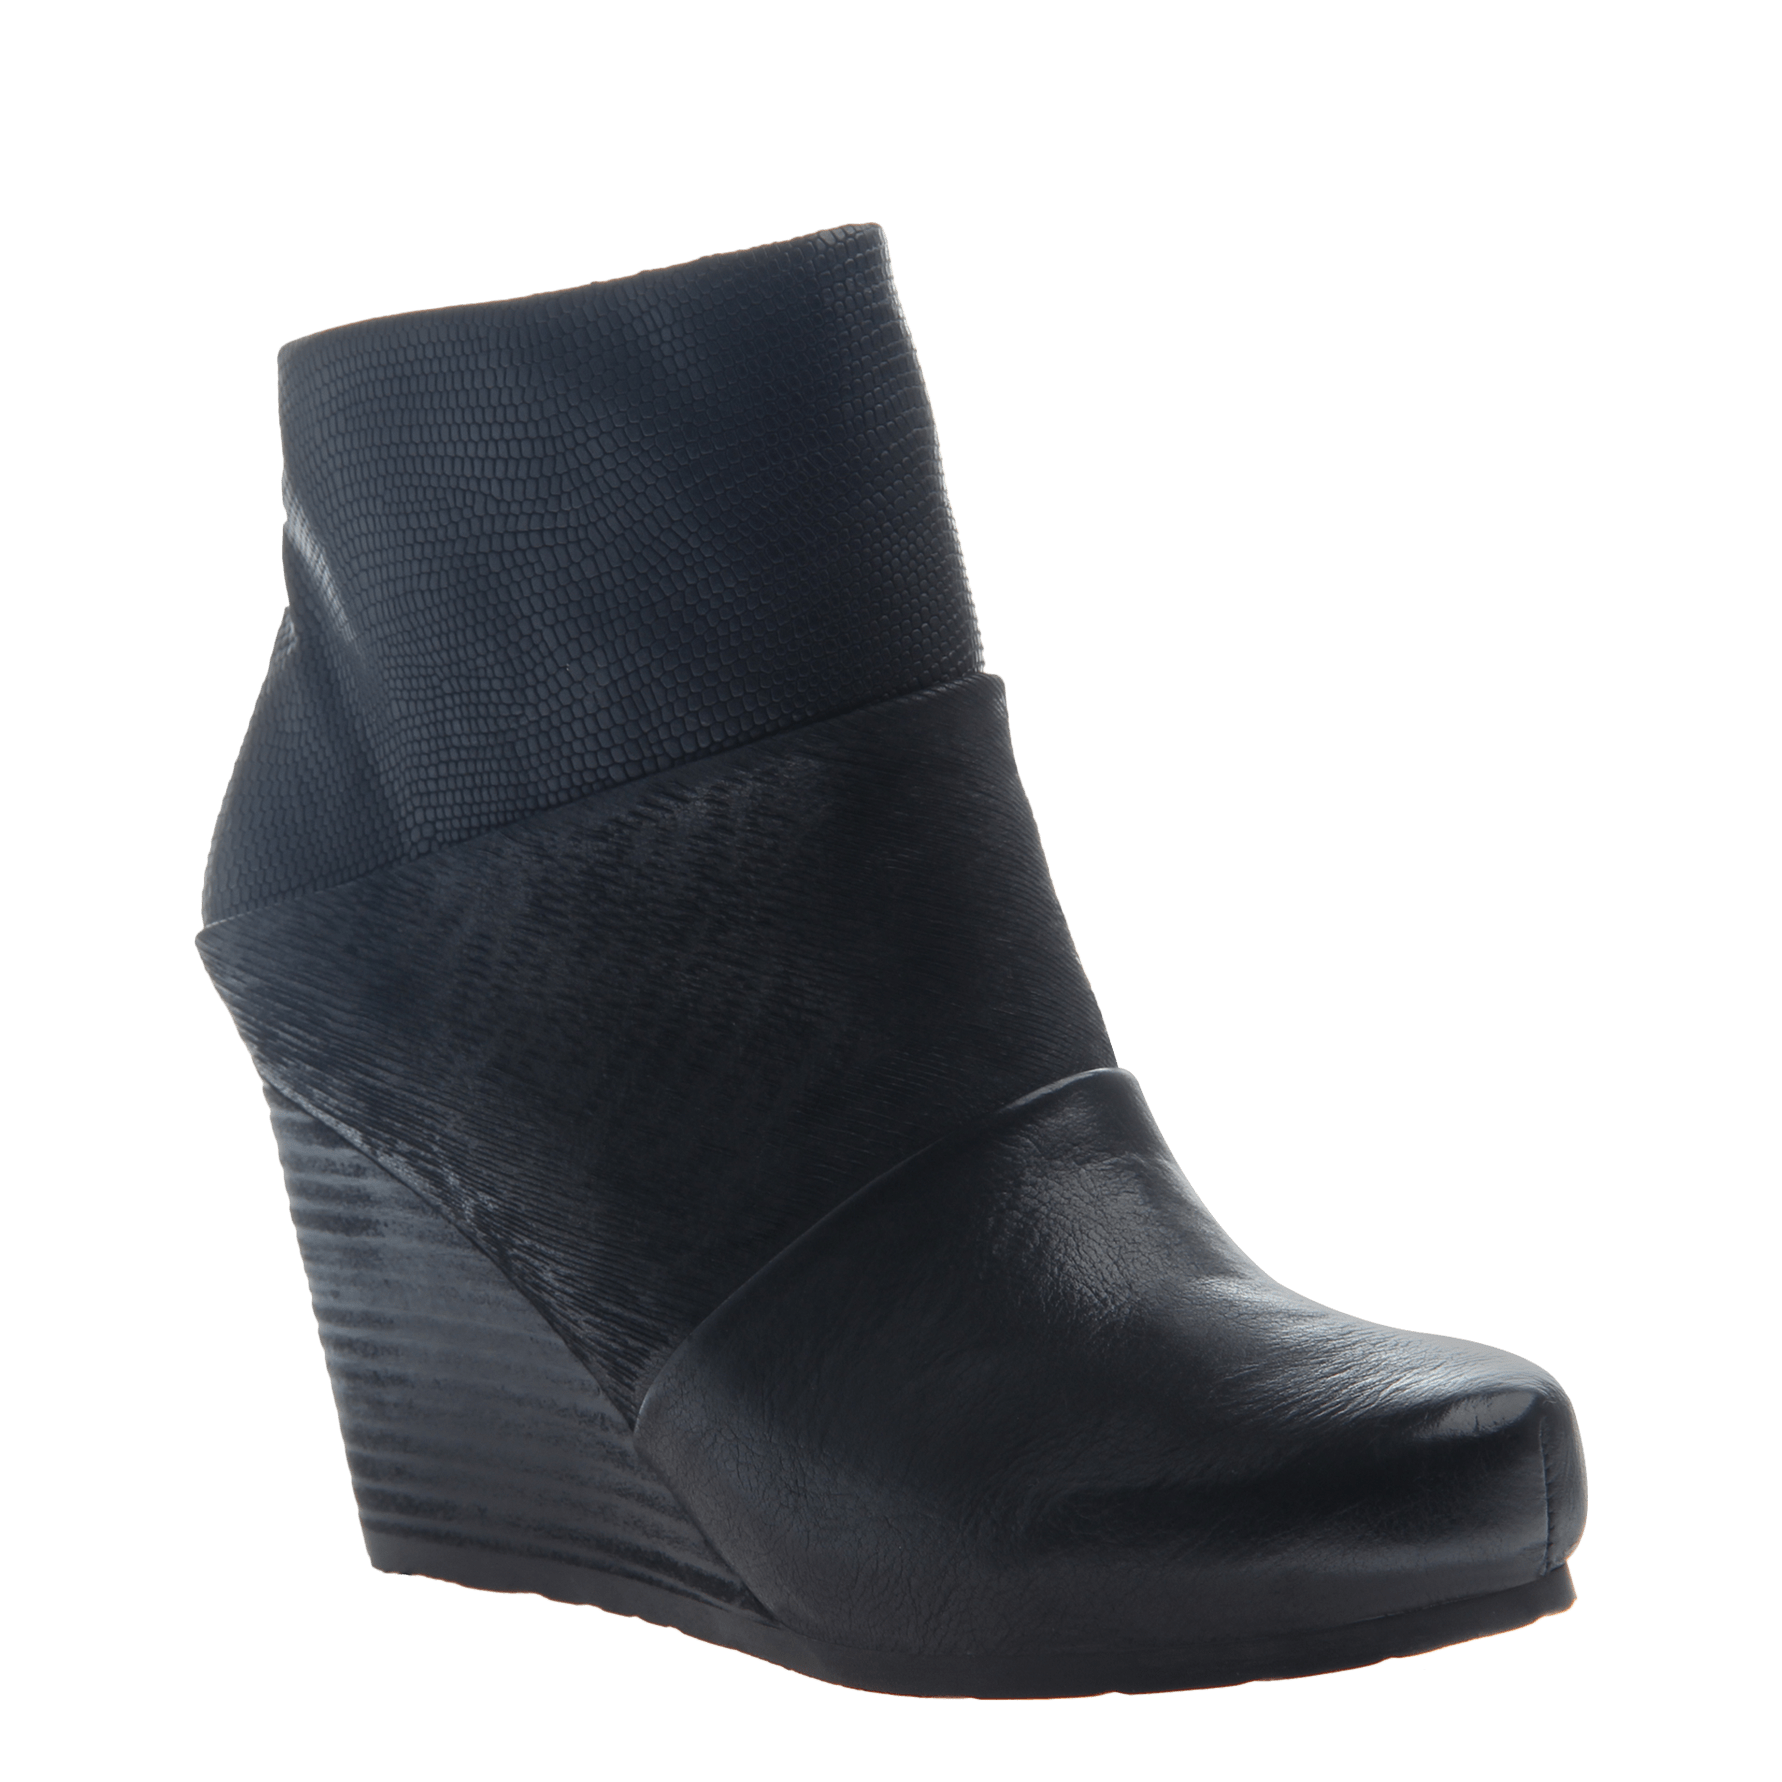 The Dharma In Black Ankle Boots travel product recommended by Ashley Culpepper on Lifney.